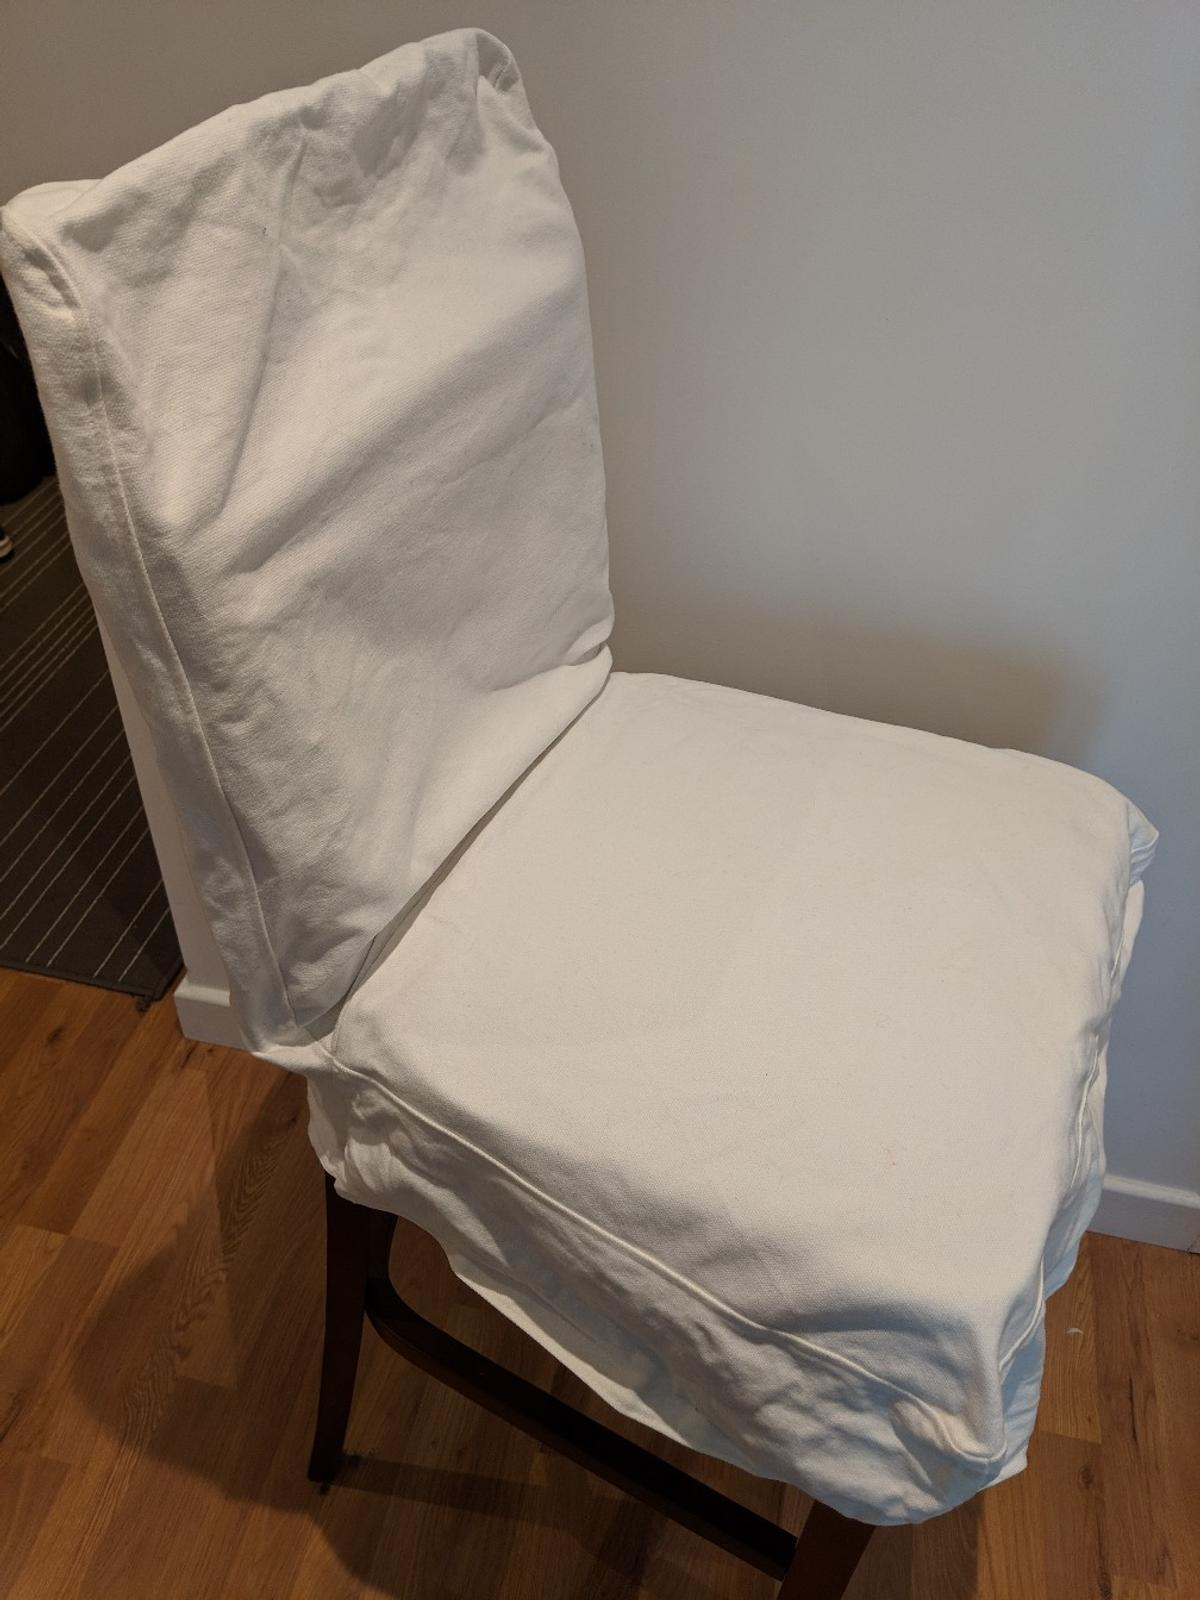 Wondrous 4 Ikea Chair Covers White Alphanode Cool Chair Designs And Ideas Alphanodeonline